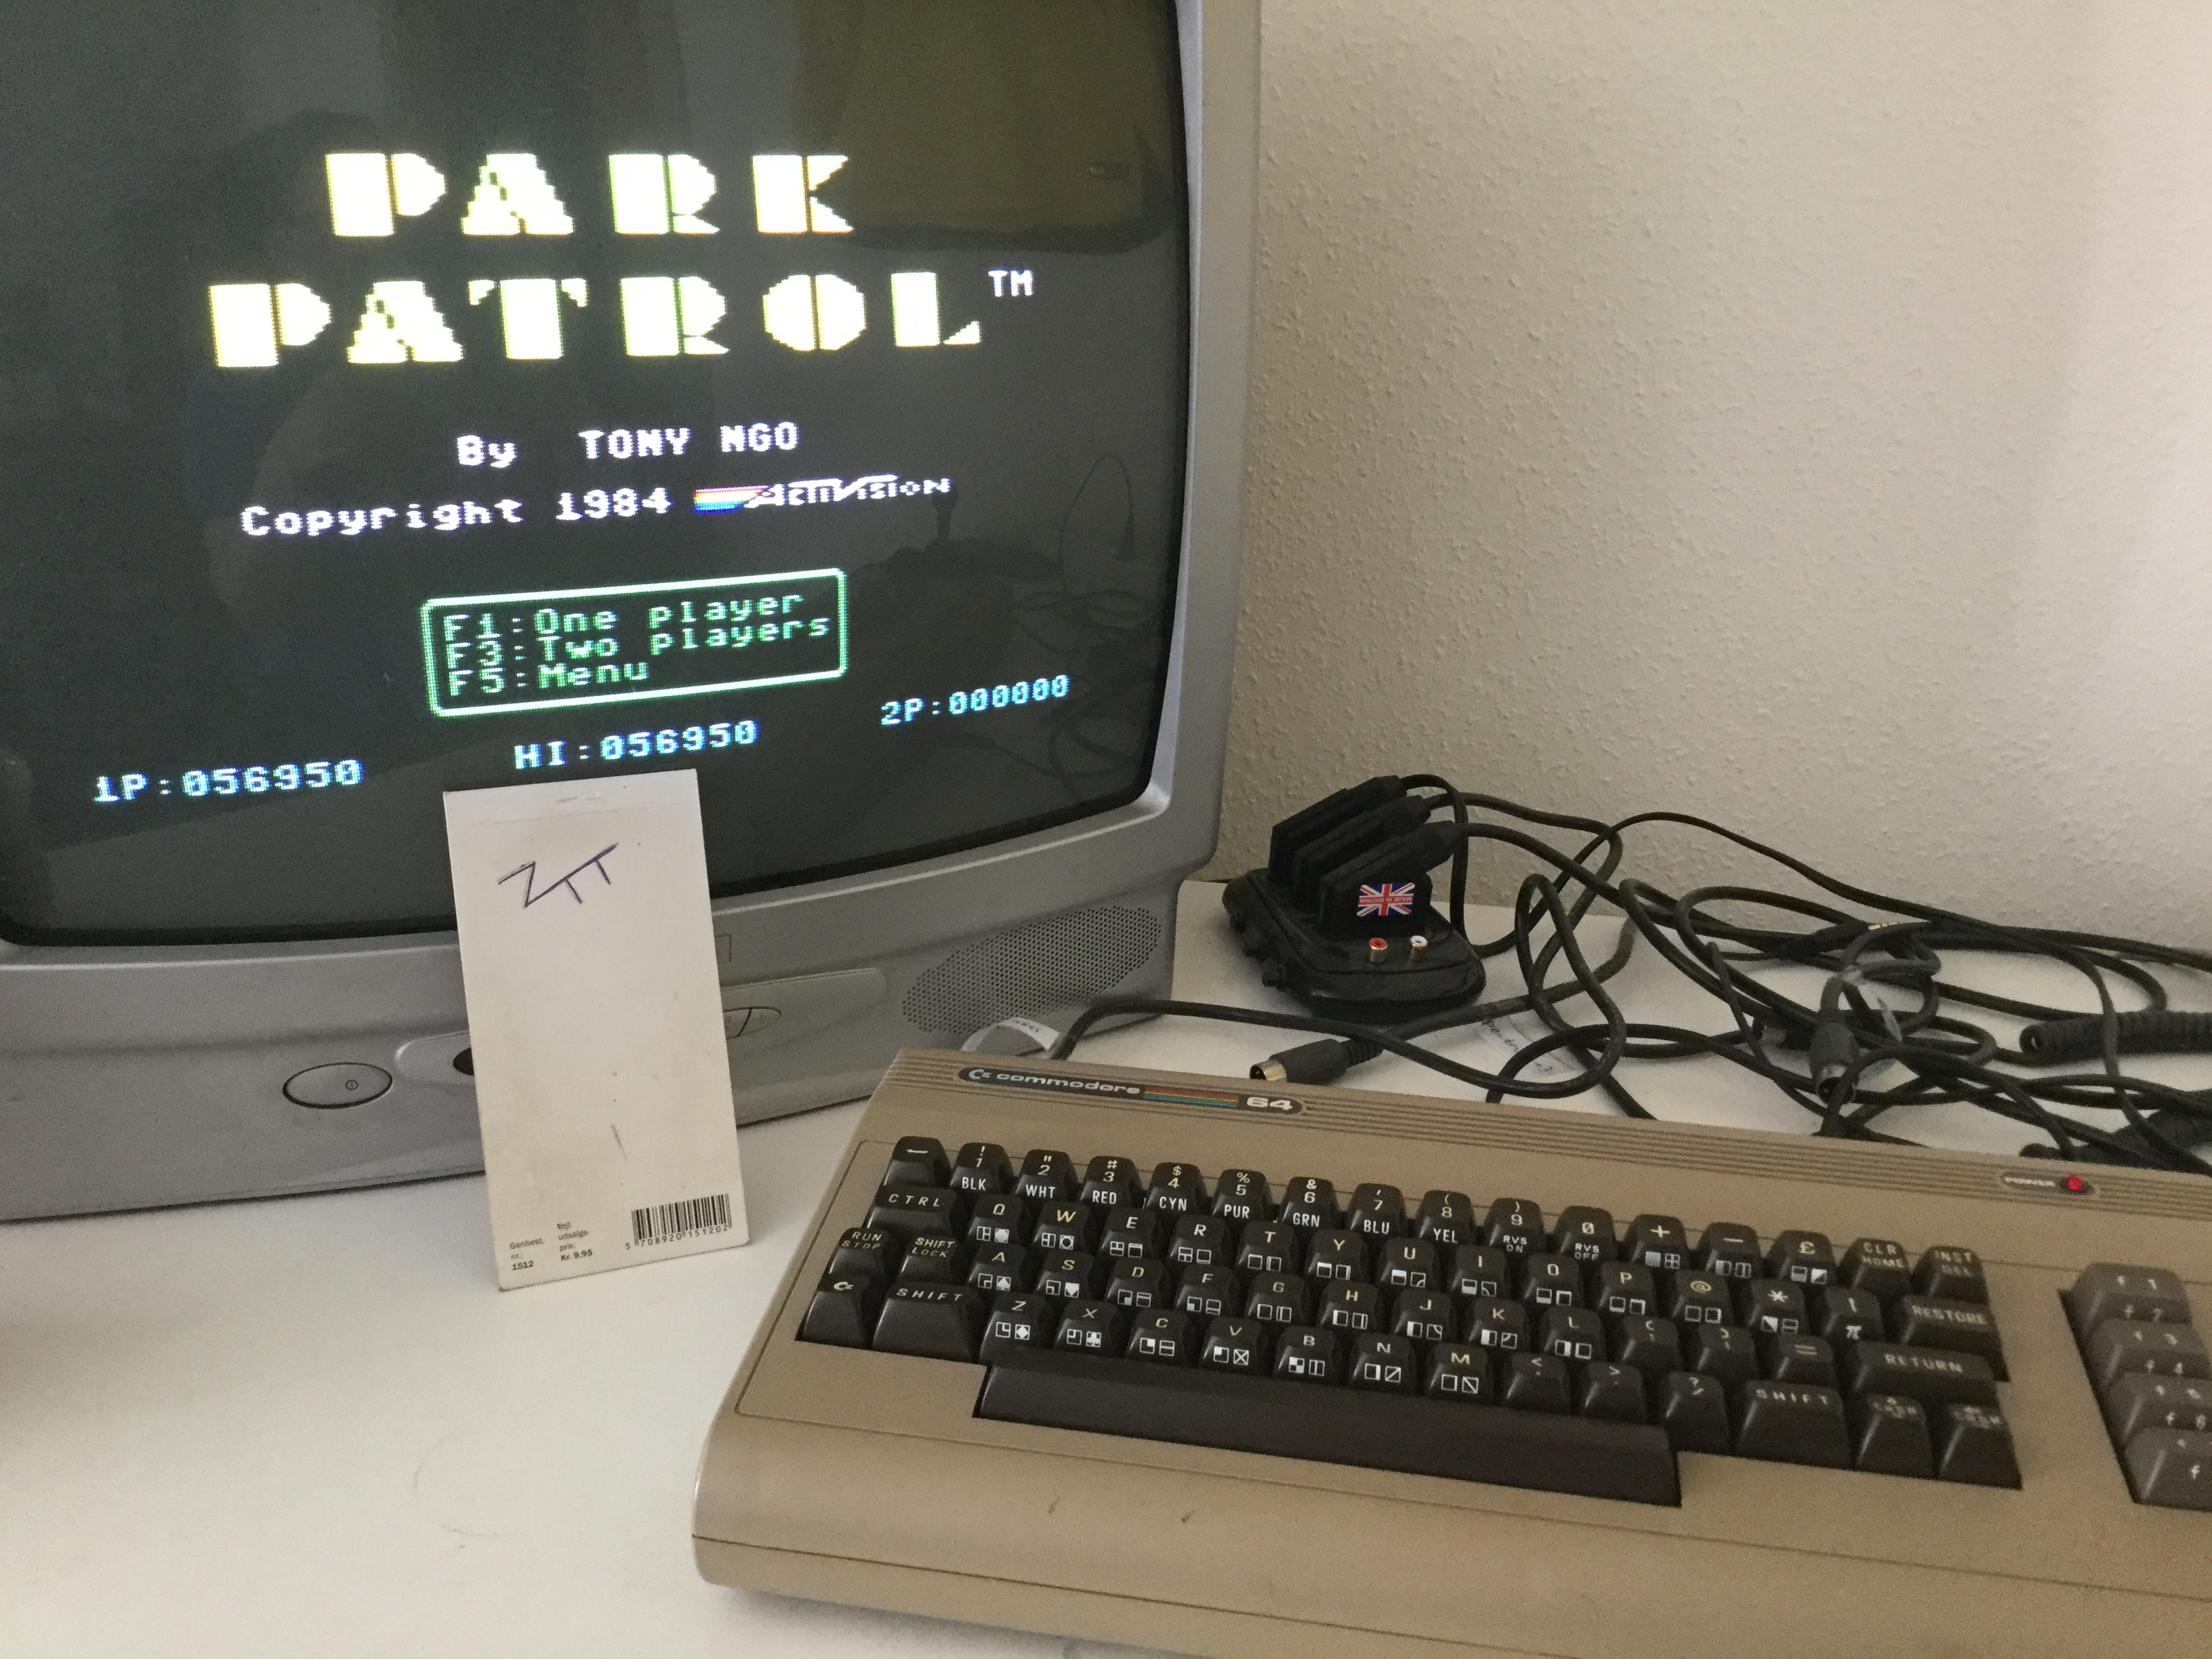 Frankie: Park Patrol (Commodore 64) 56,950 points on 2017-05-25 04:13:34